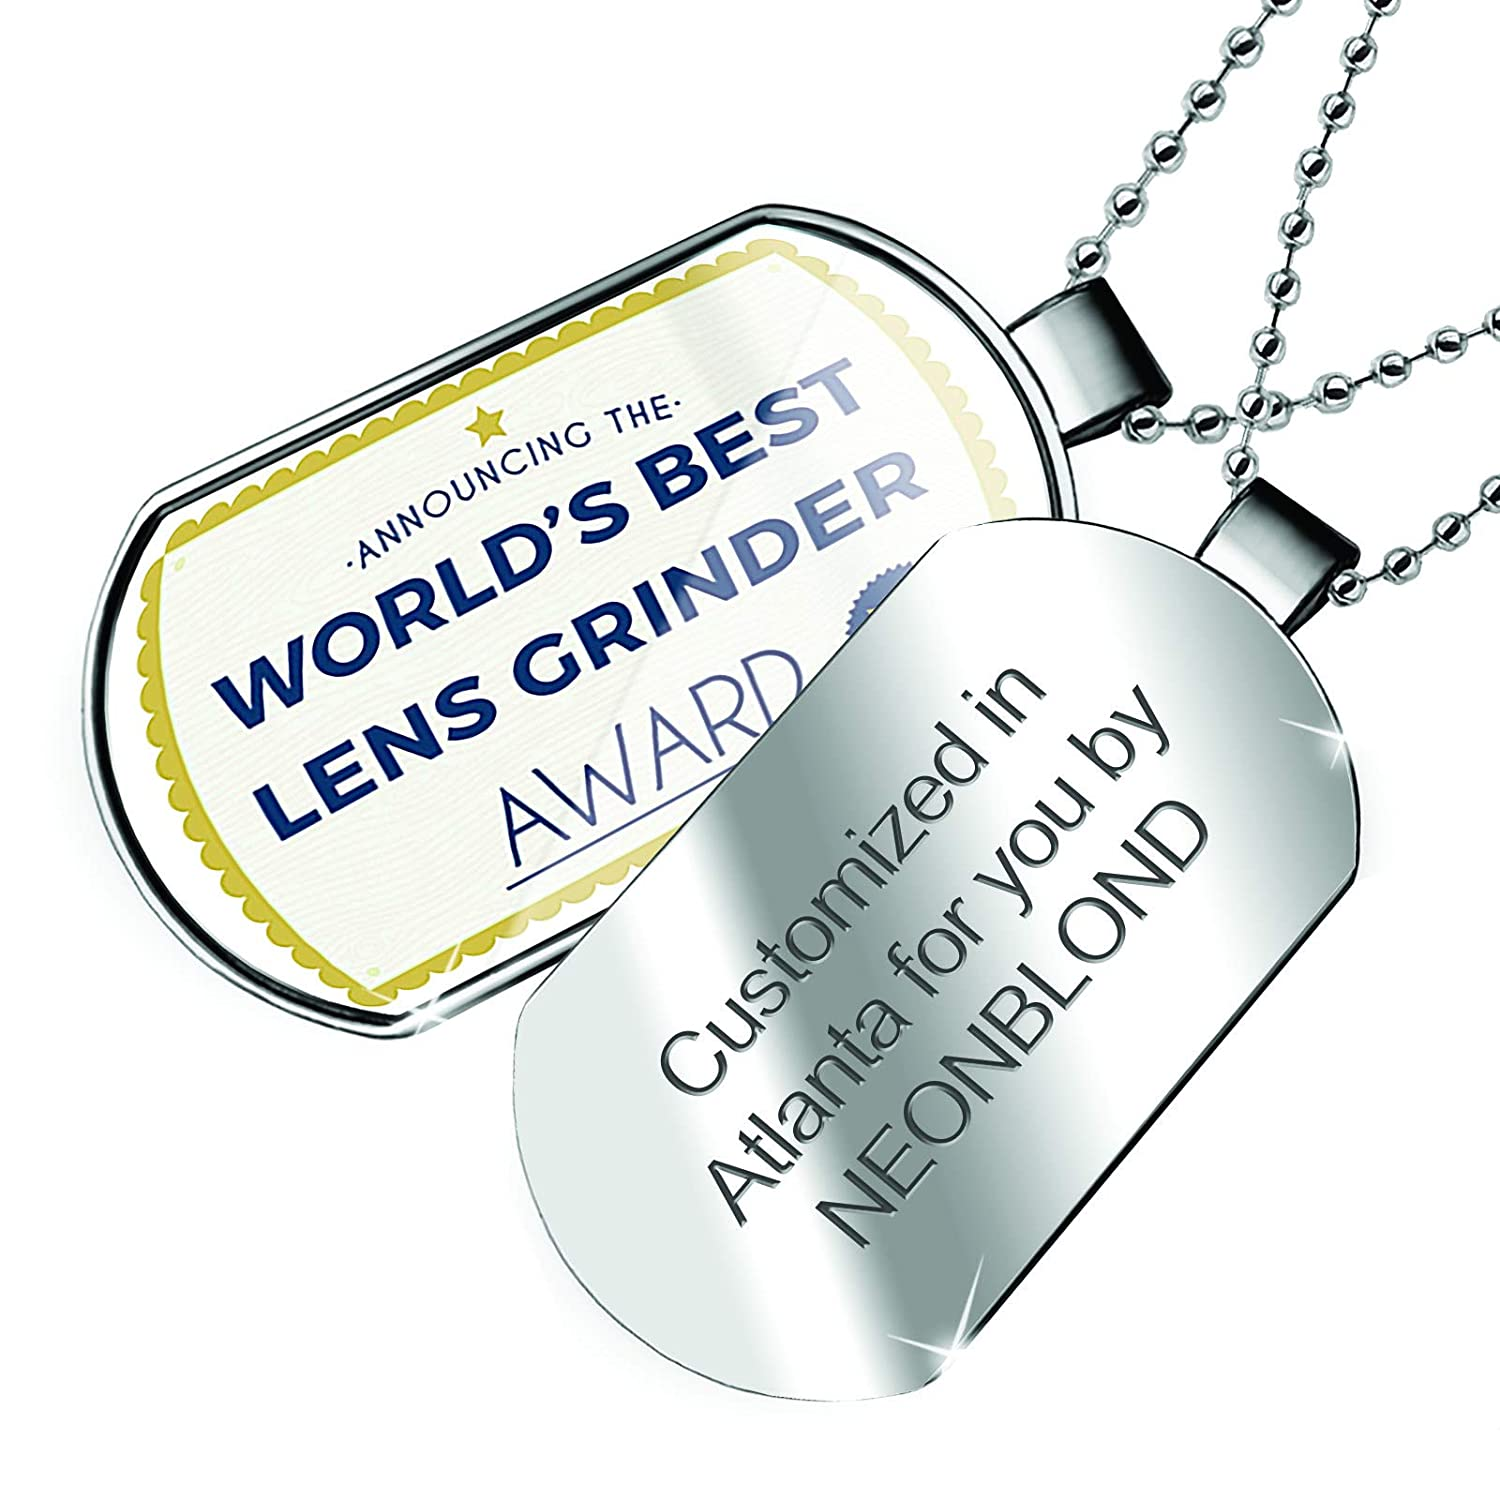 NEONBLOND Personalized Name Engraved Worlds Best Lens Grinder Certificate Award Dogtag Necklace